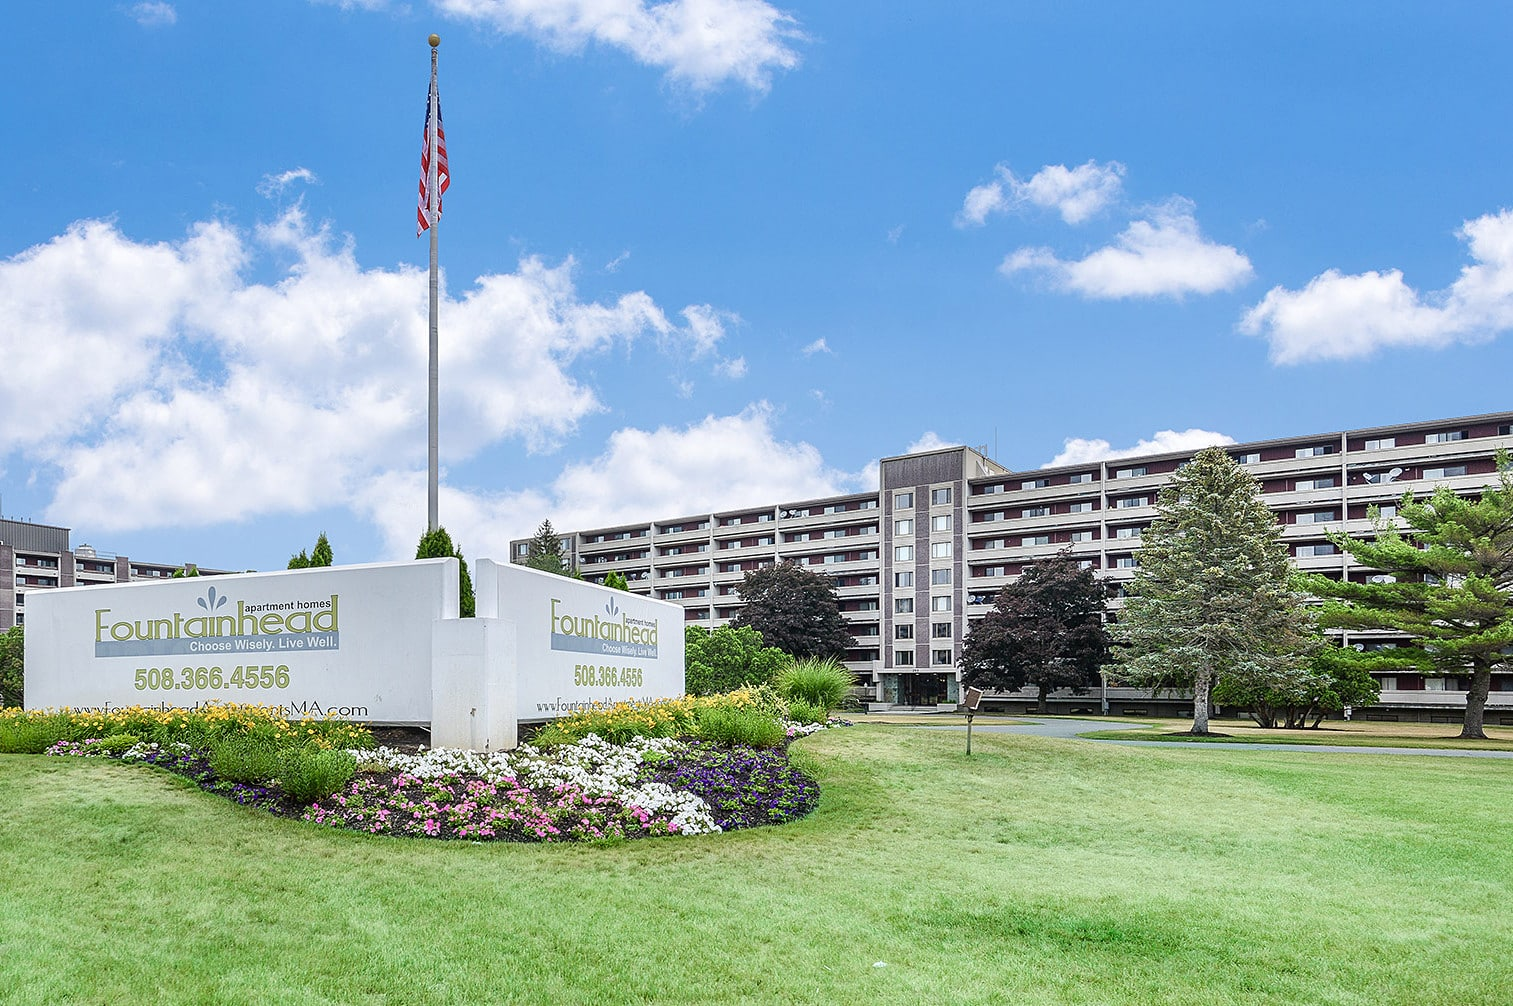 Fountainhead apartments in Westborough MA